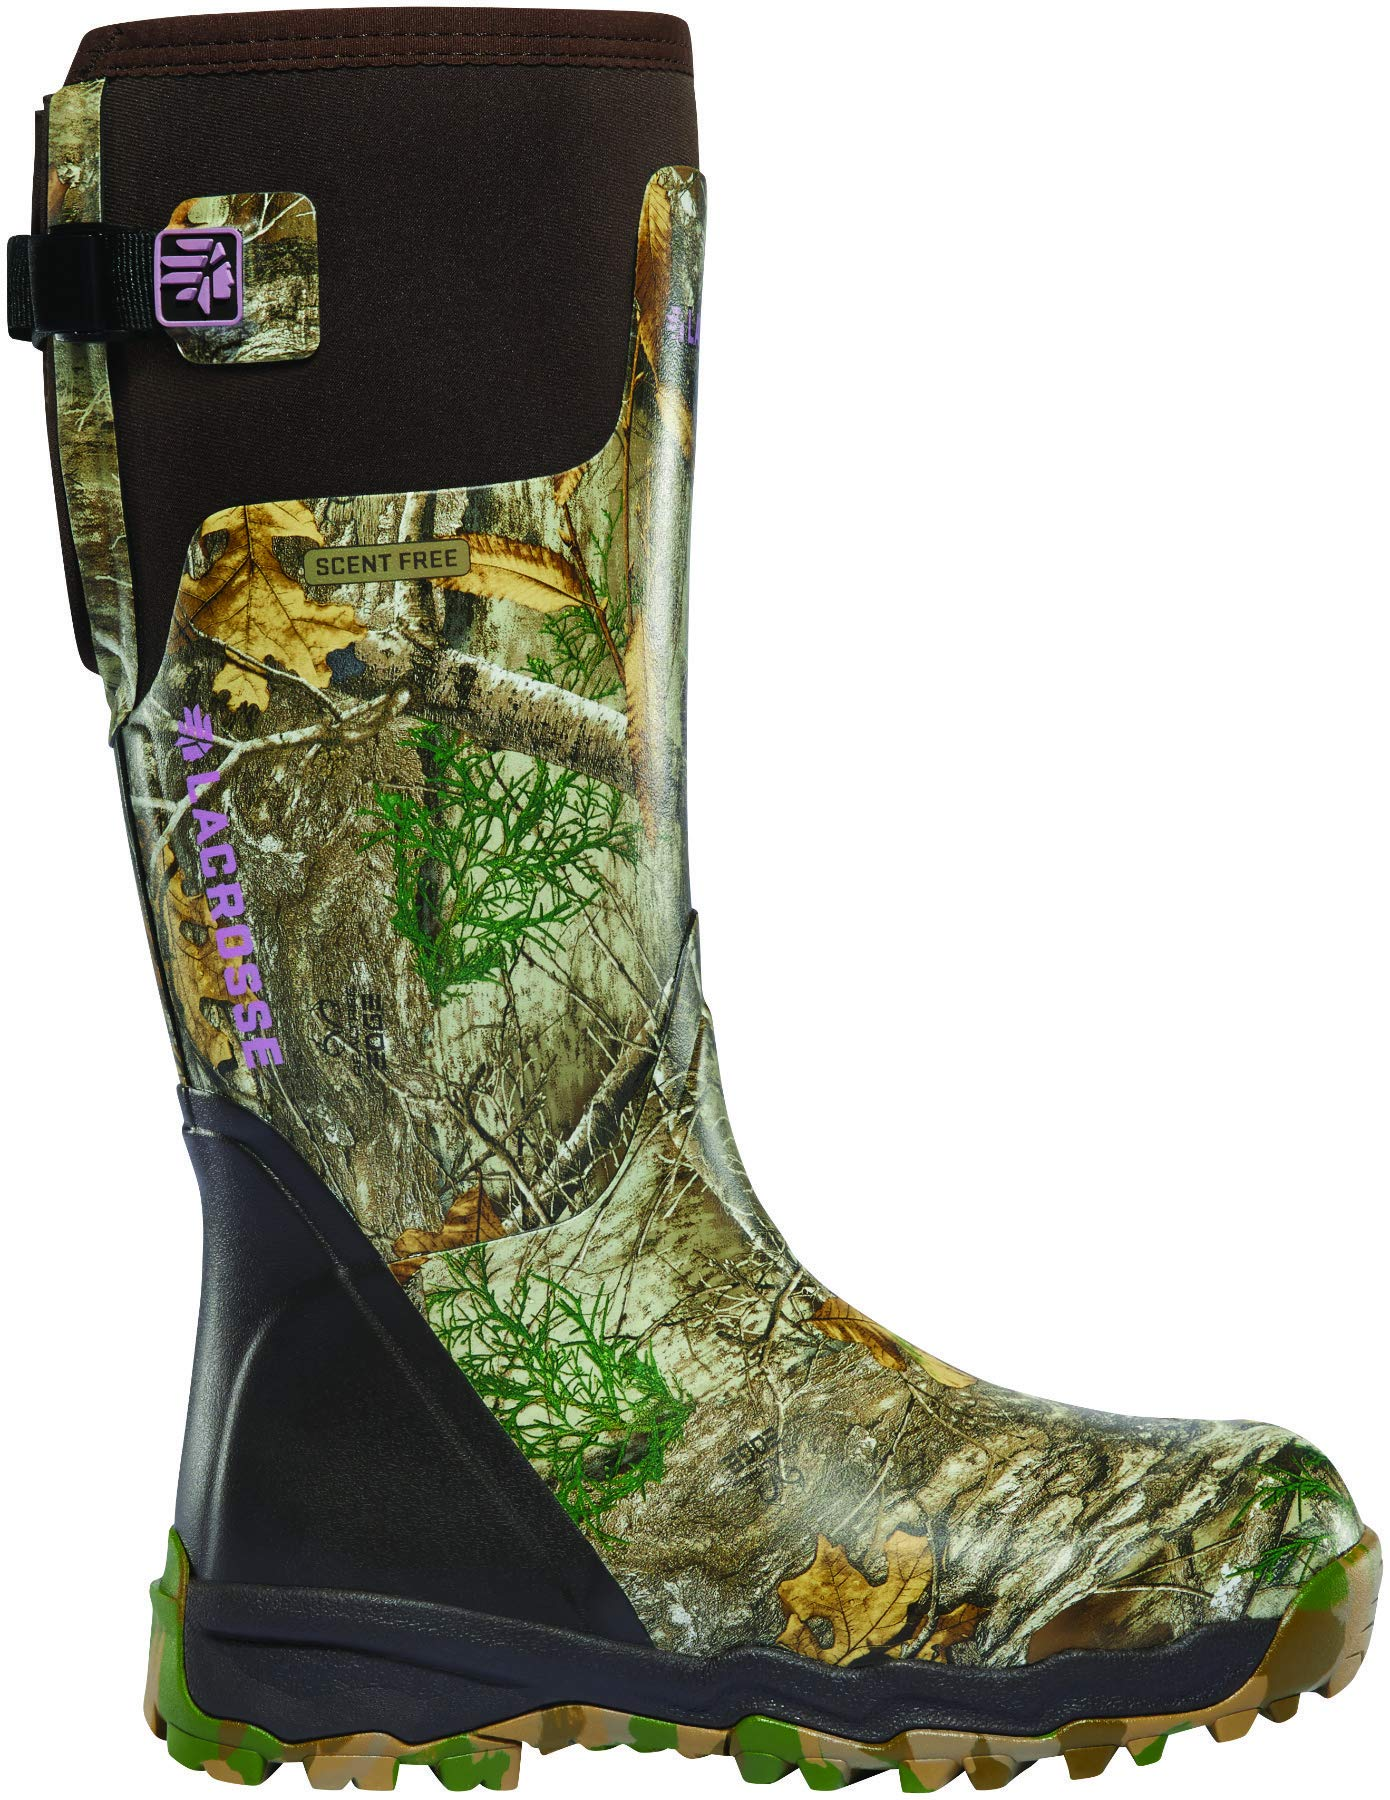 Lacrosse 376026 Women's Alphaburly Pro 15'' Hunting Boot, Realtree Edge - 10 M US by Lacrosse